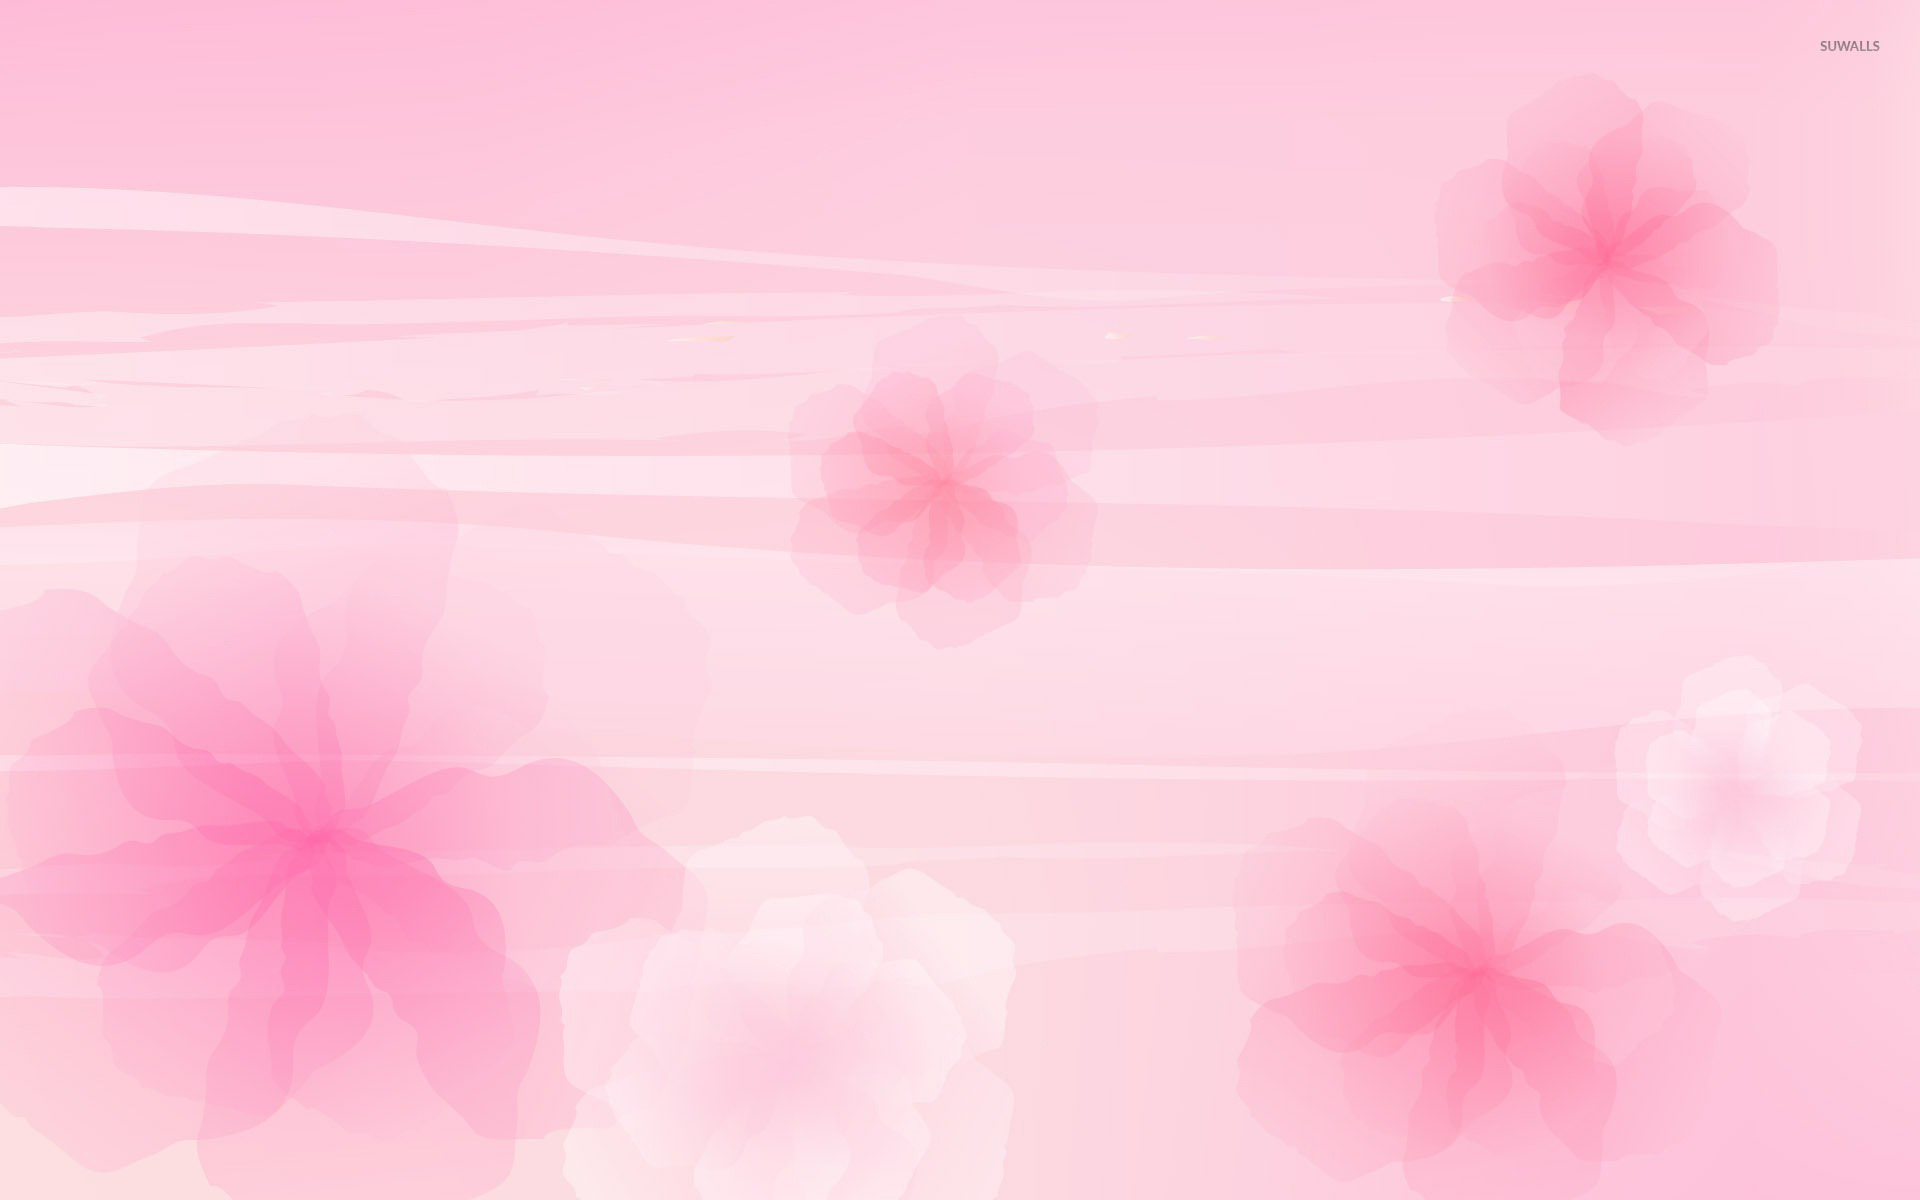 Pink Flowers 2 Wallpaper Abstract Wallpapers 18959